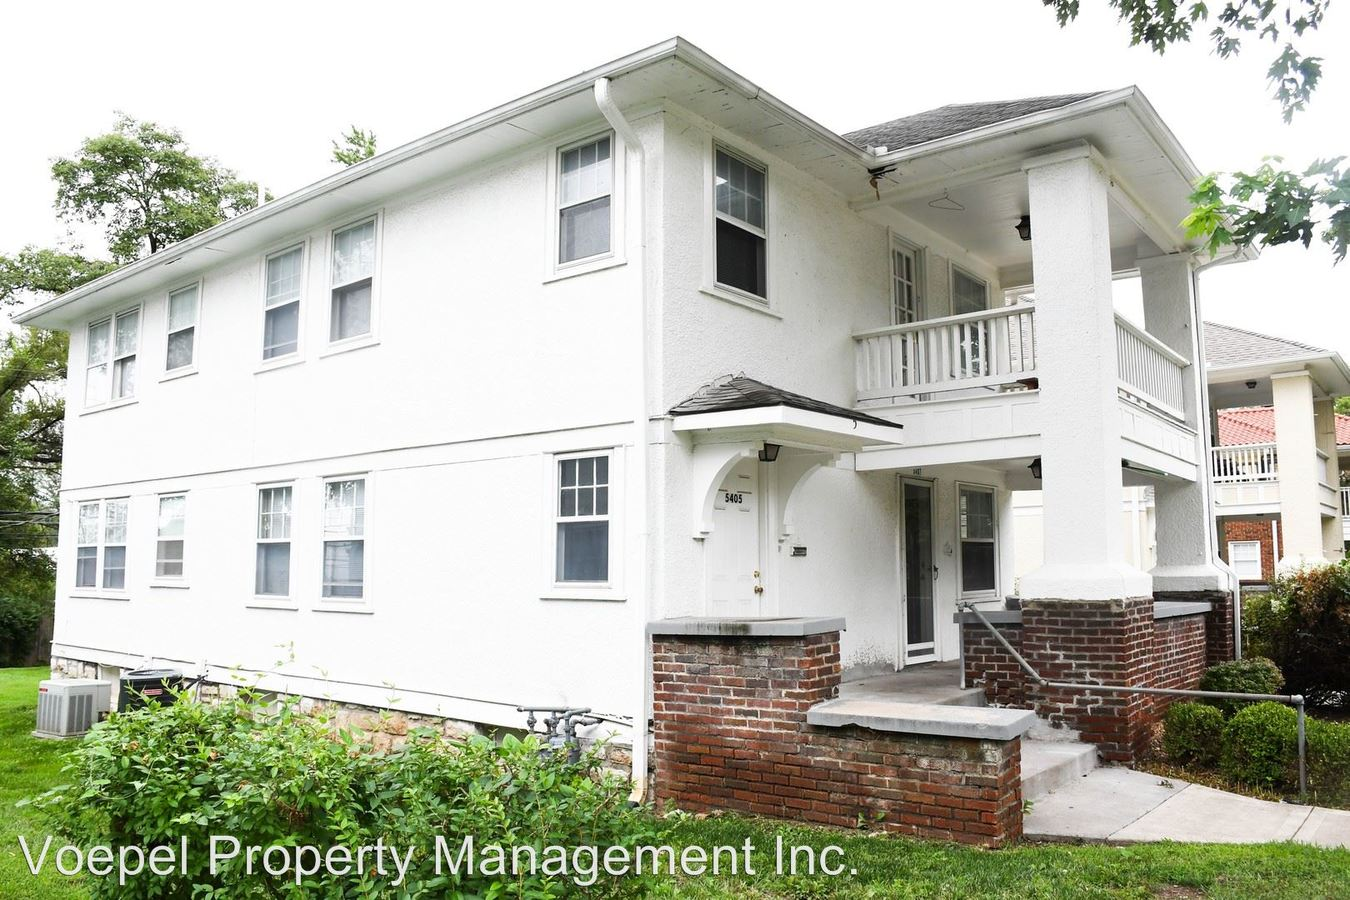 2 Bedrooms 1 Bathroom Apartment for rent at 5405/5407 Harrison St. in Kansas City, MO